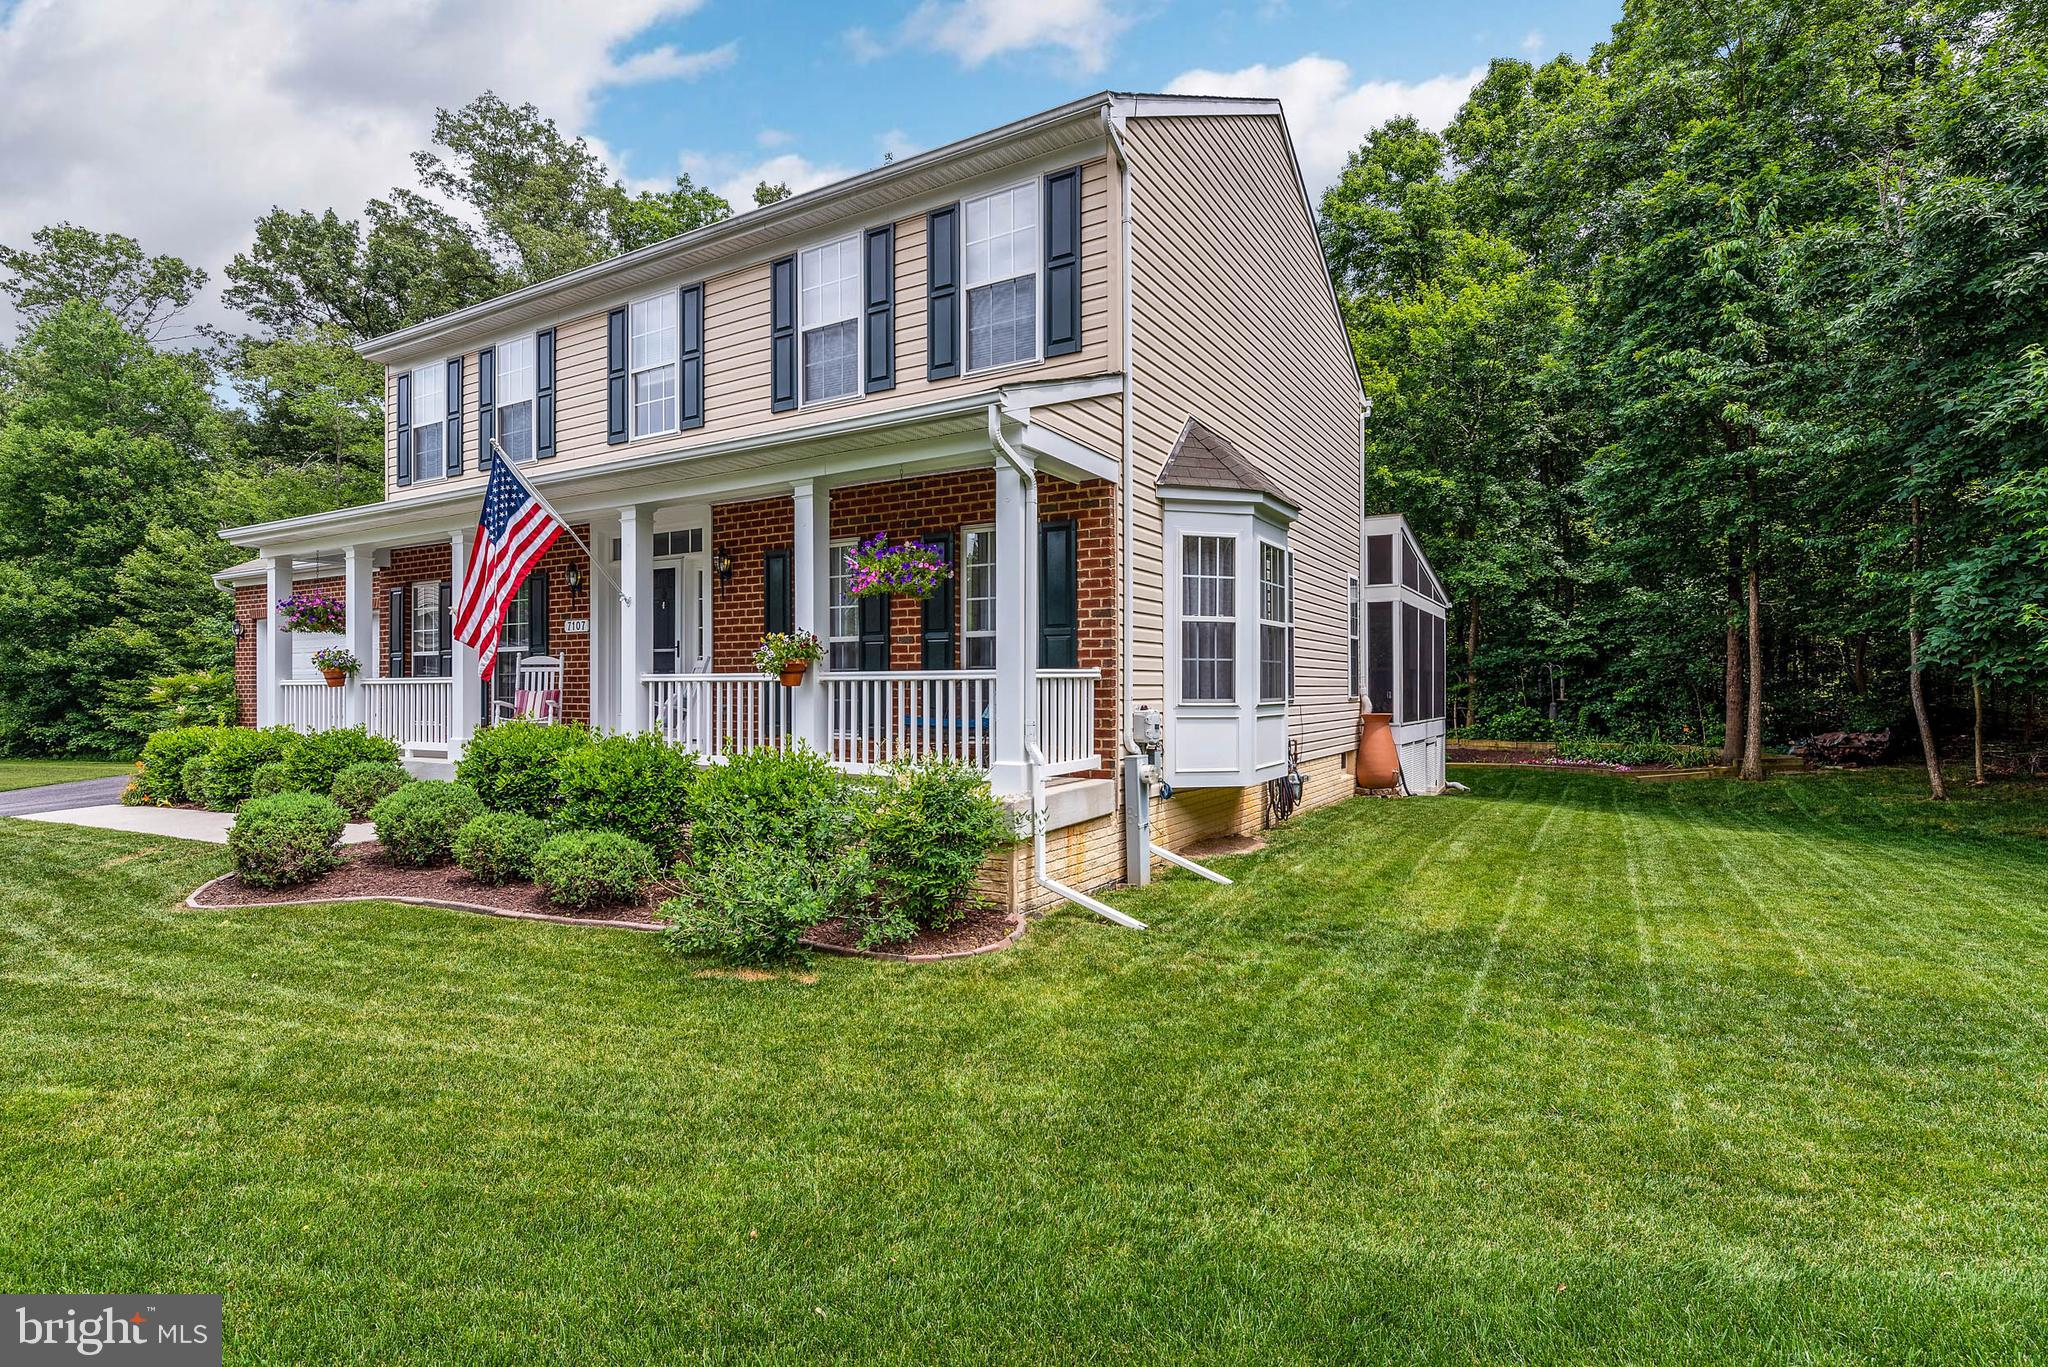 7107 FOREST CREEK WAY, HANOVER, MD 21076